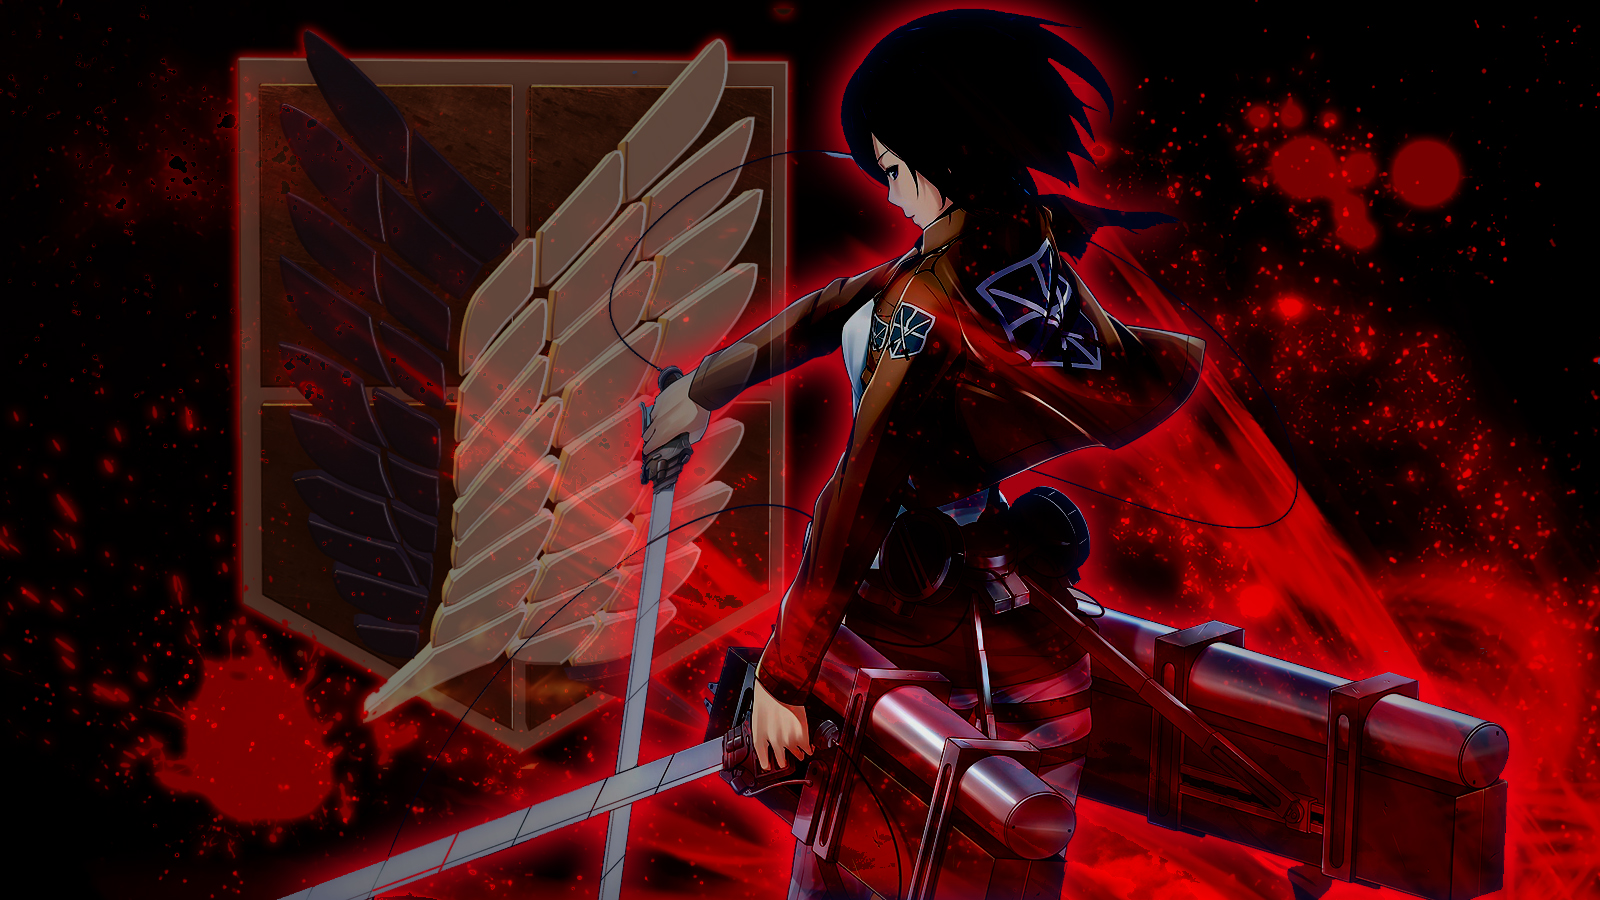 Mikasa Ackerman Wallpaper And Background Image 1600x900 Id 915774 Wallpaper Abyss